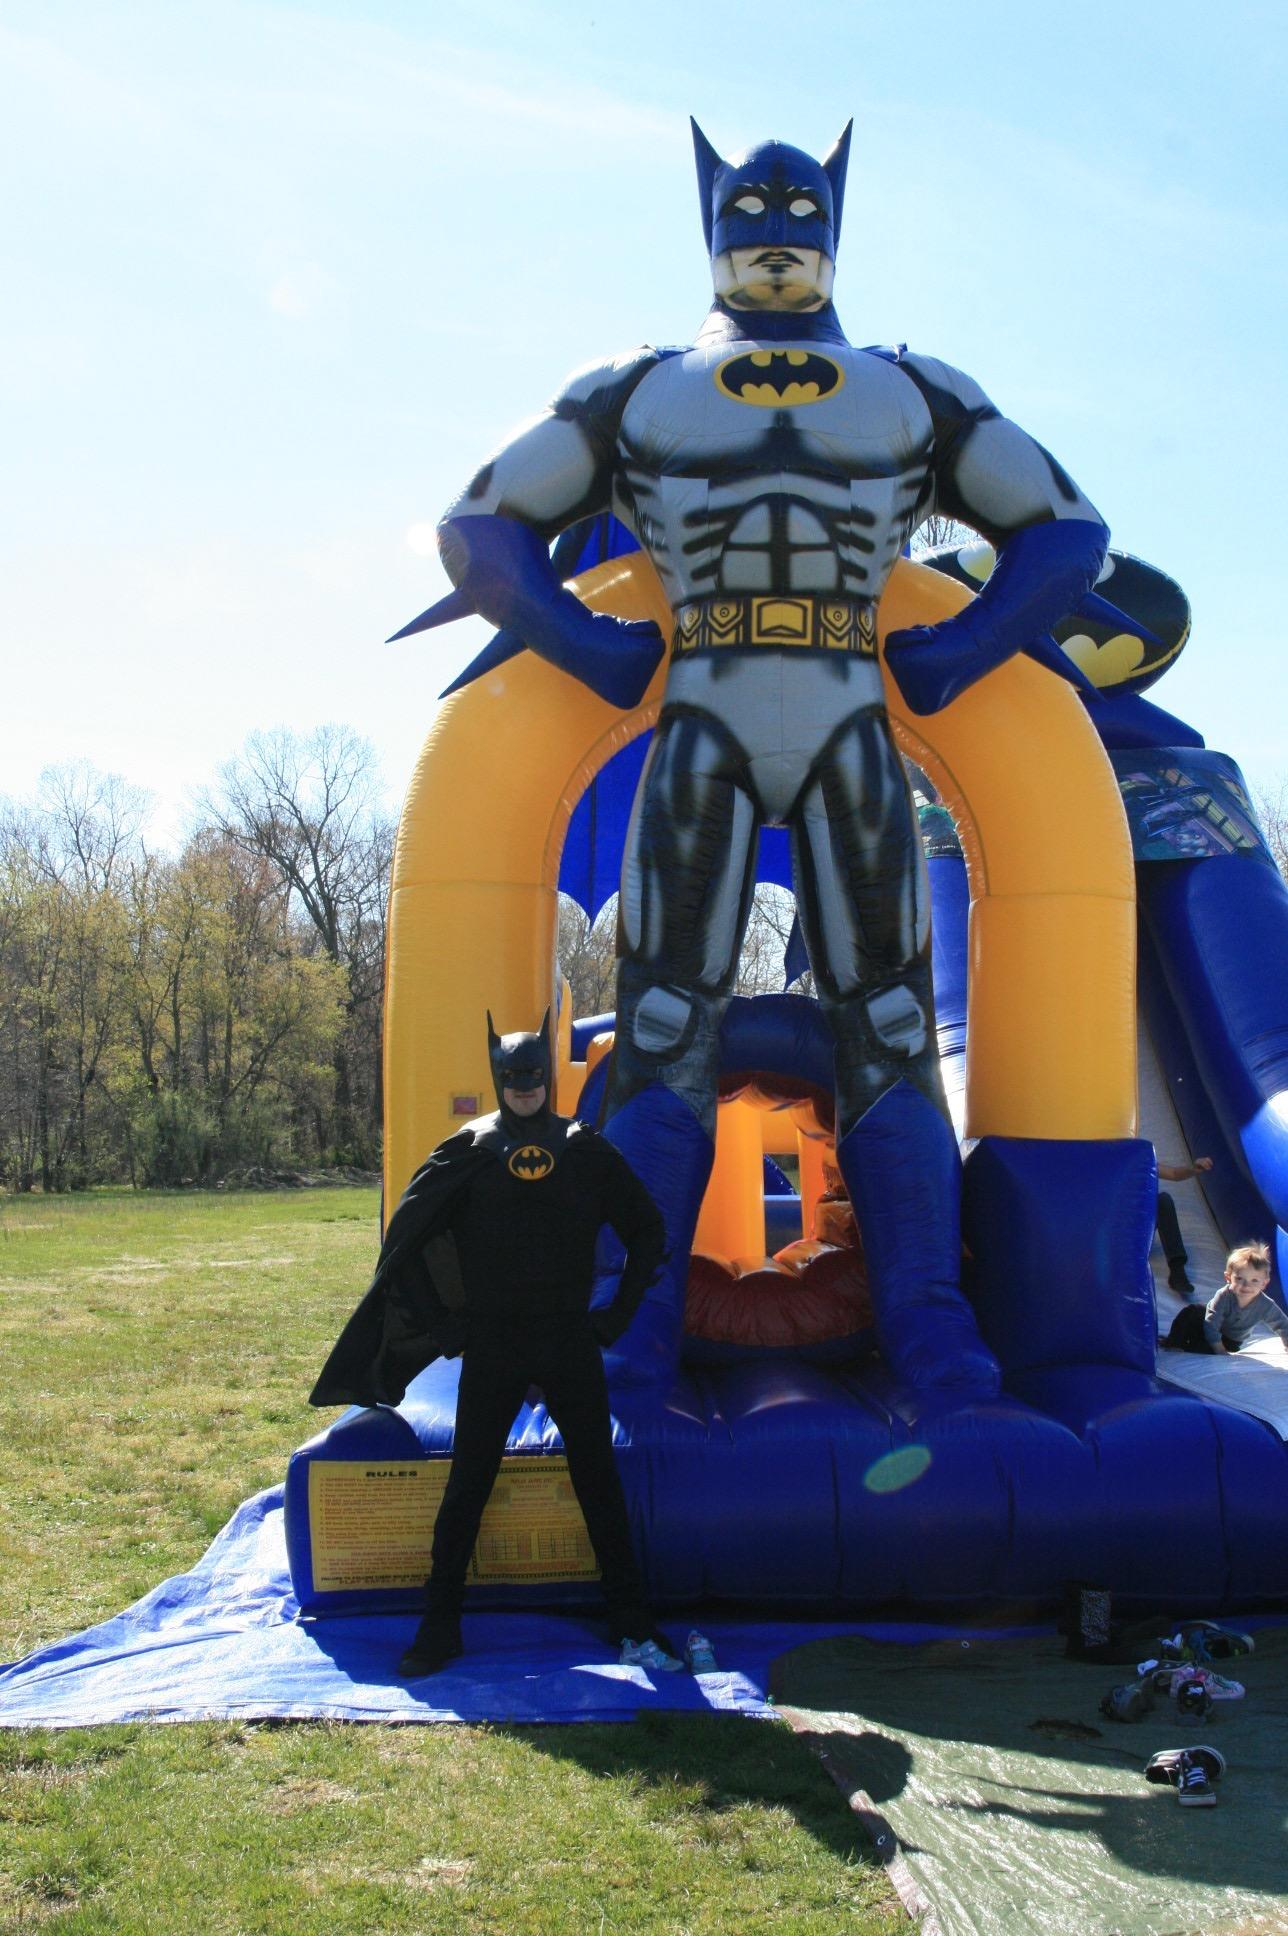 batman childrens table and chairs swivel chair footstool karcher event rental llc tents tables